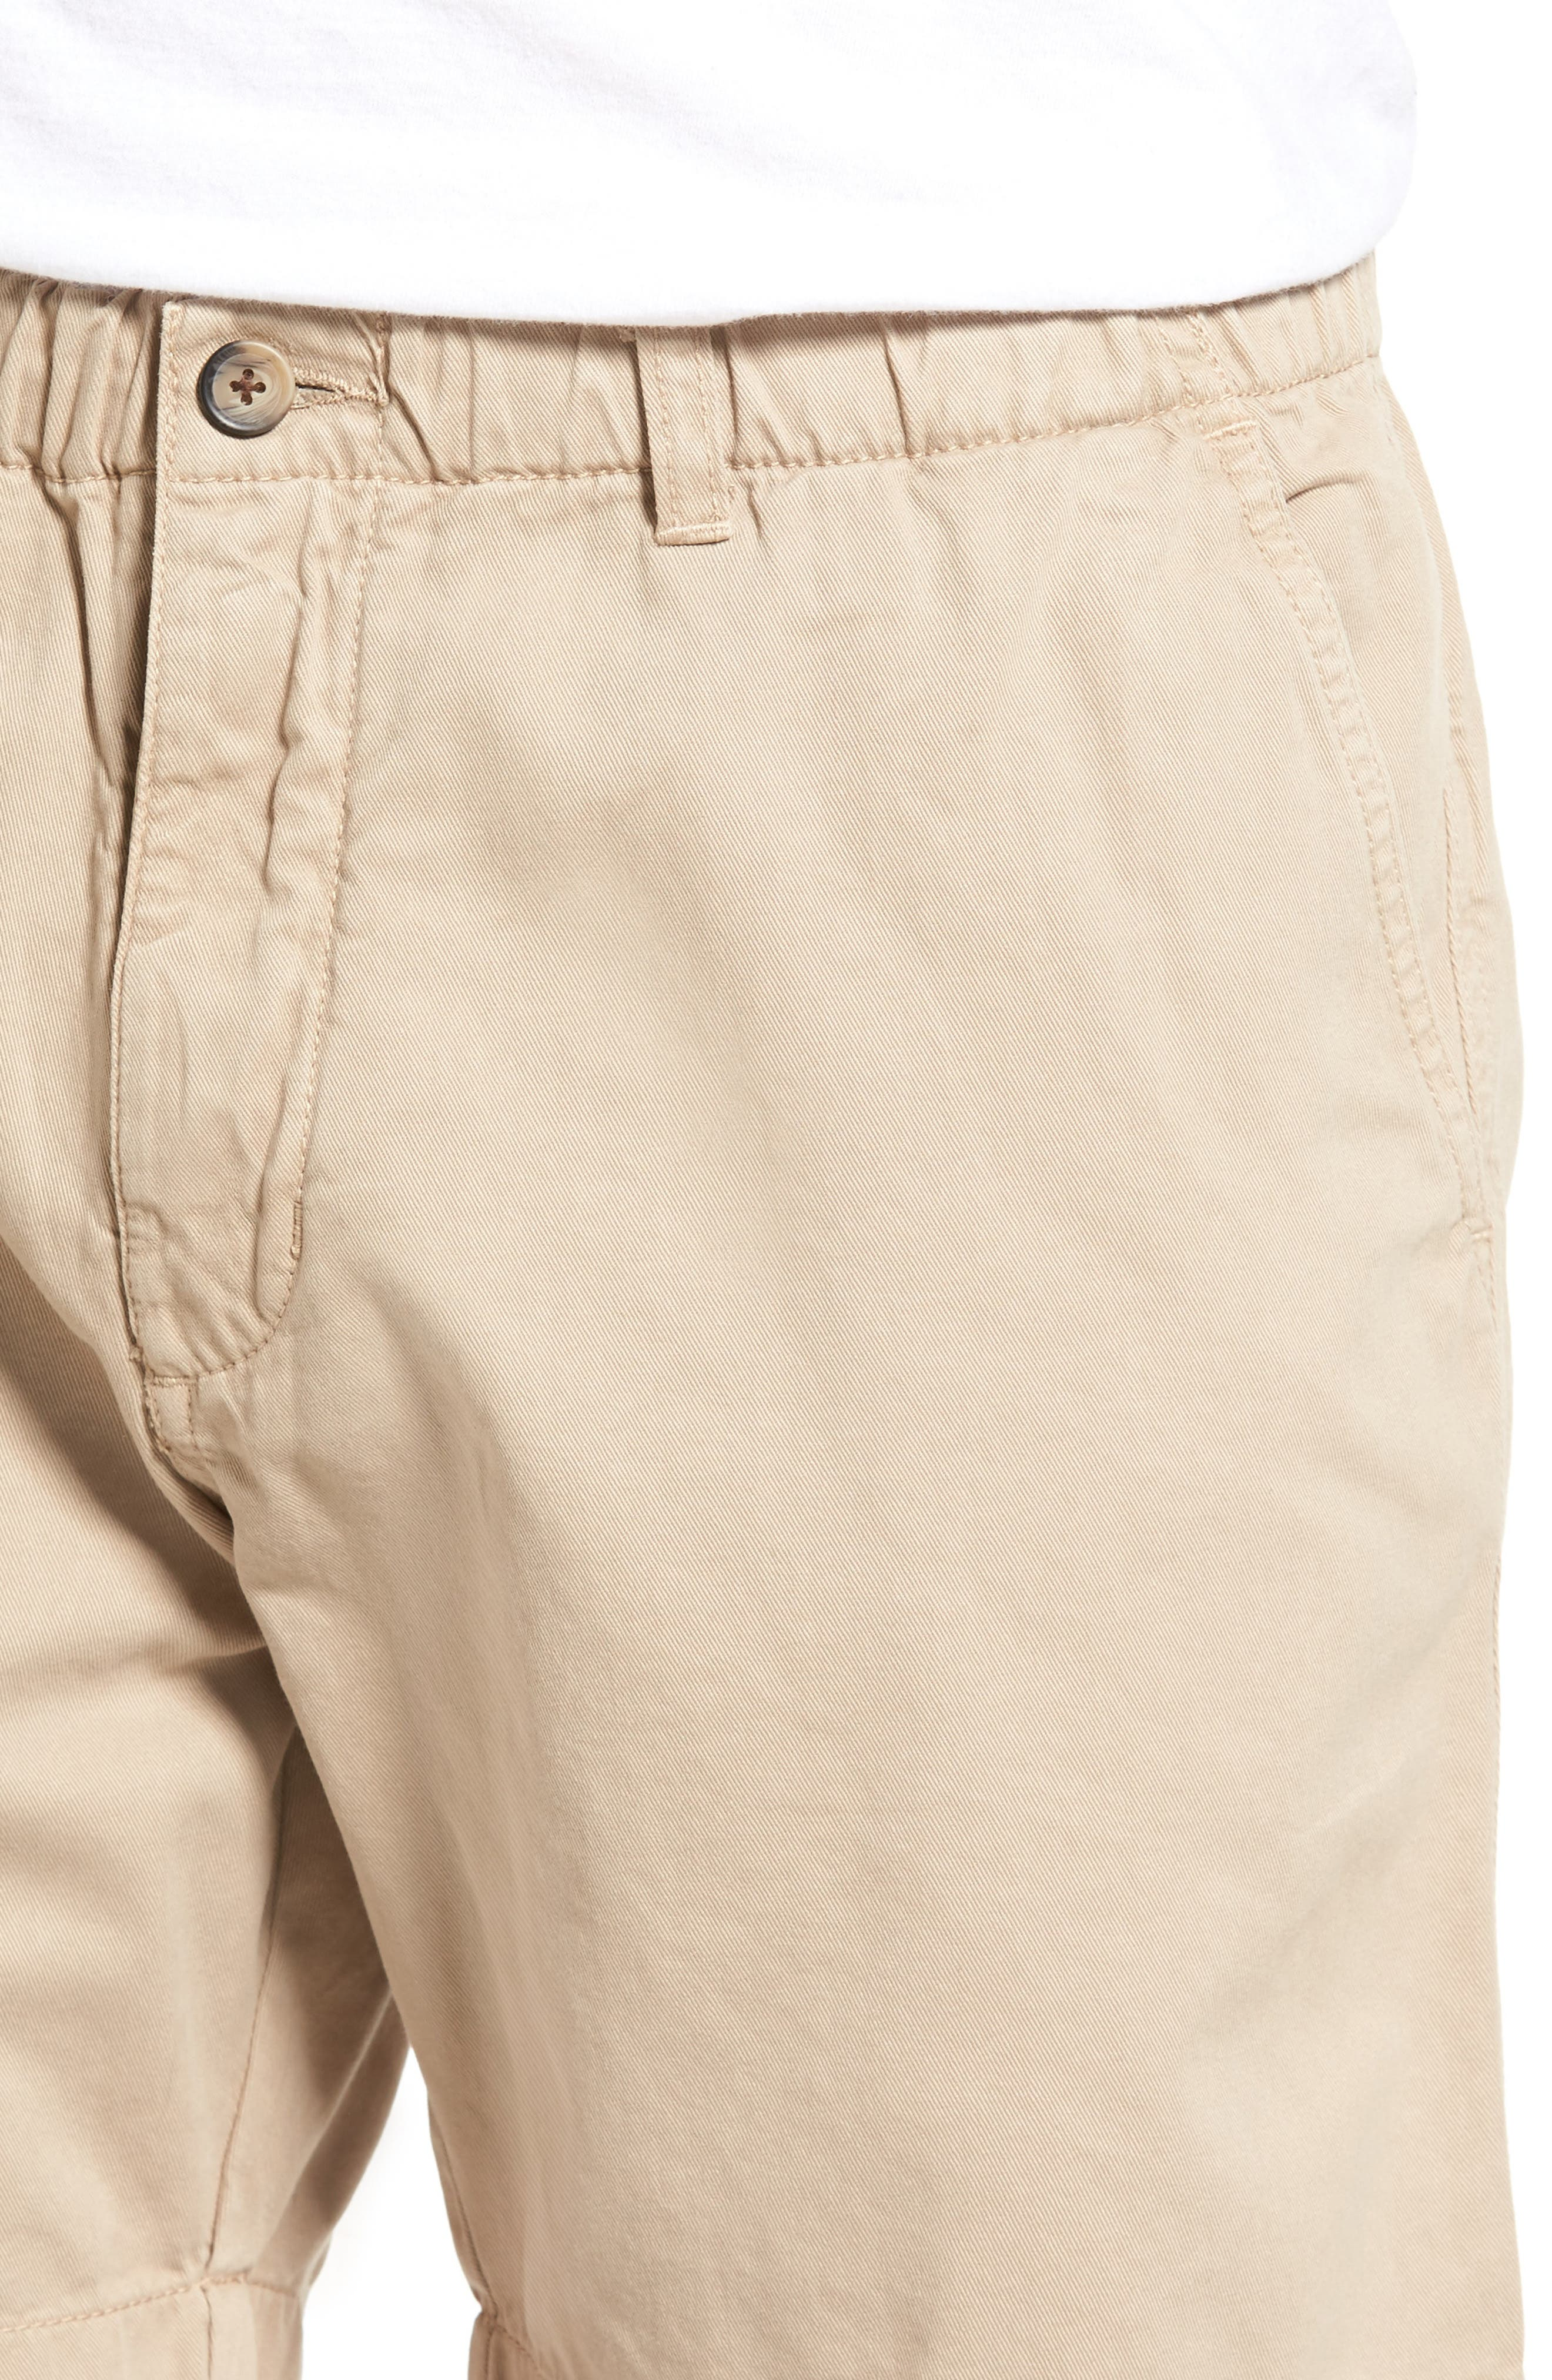 Washed Shorts,                             Alternate thumbnail 4, color,                             250